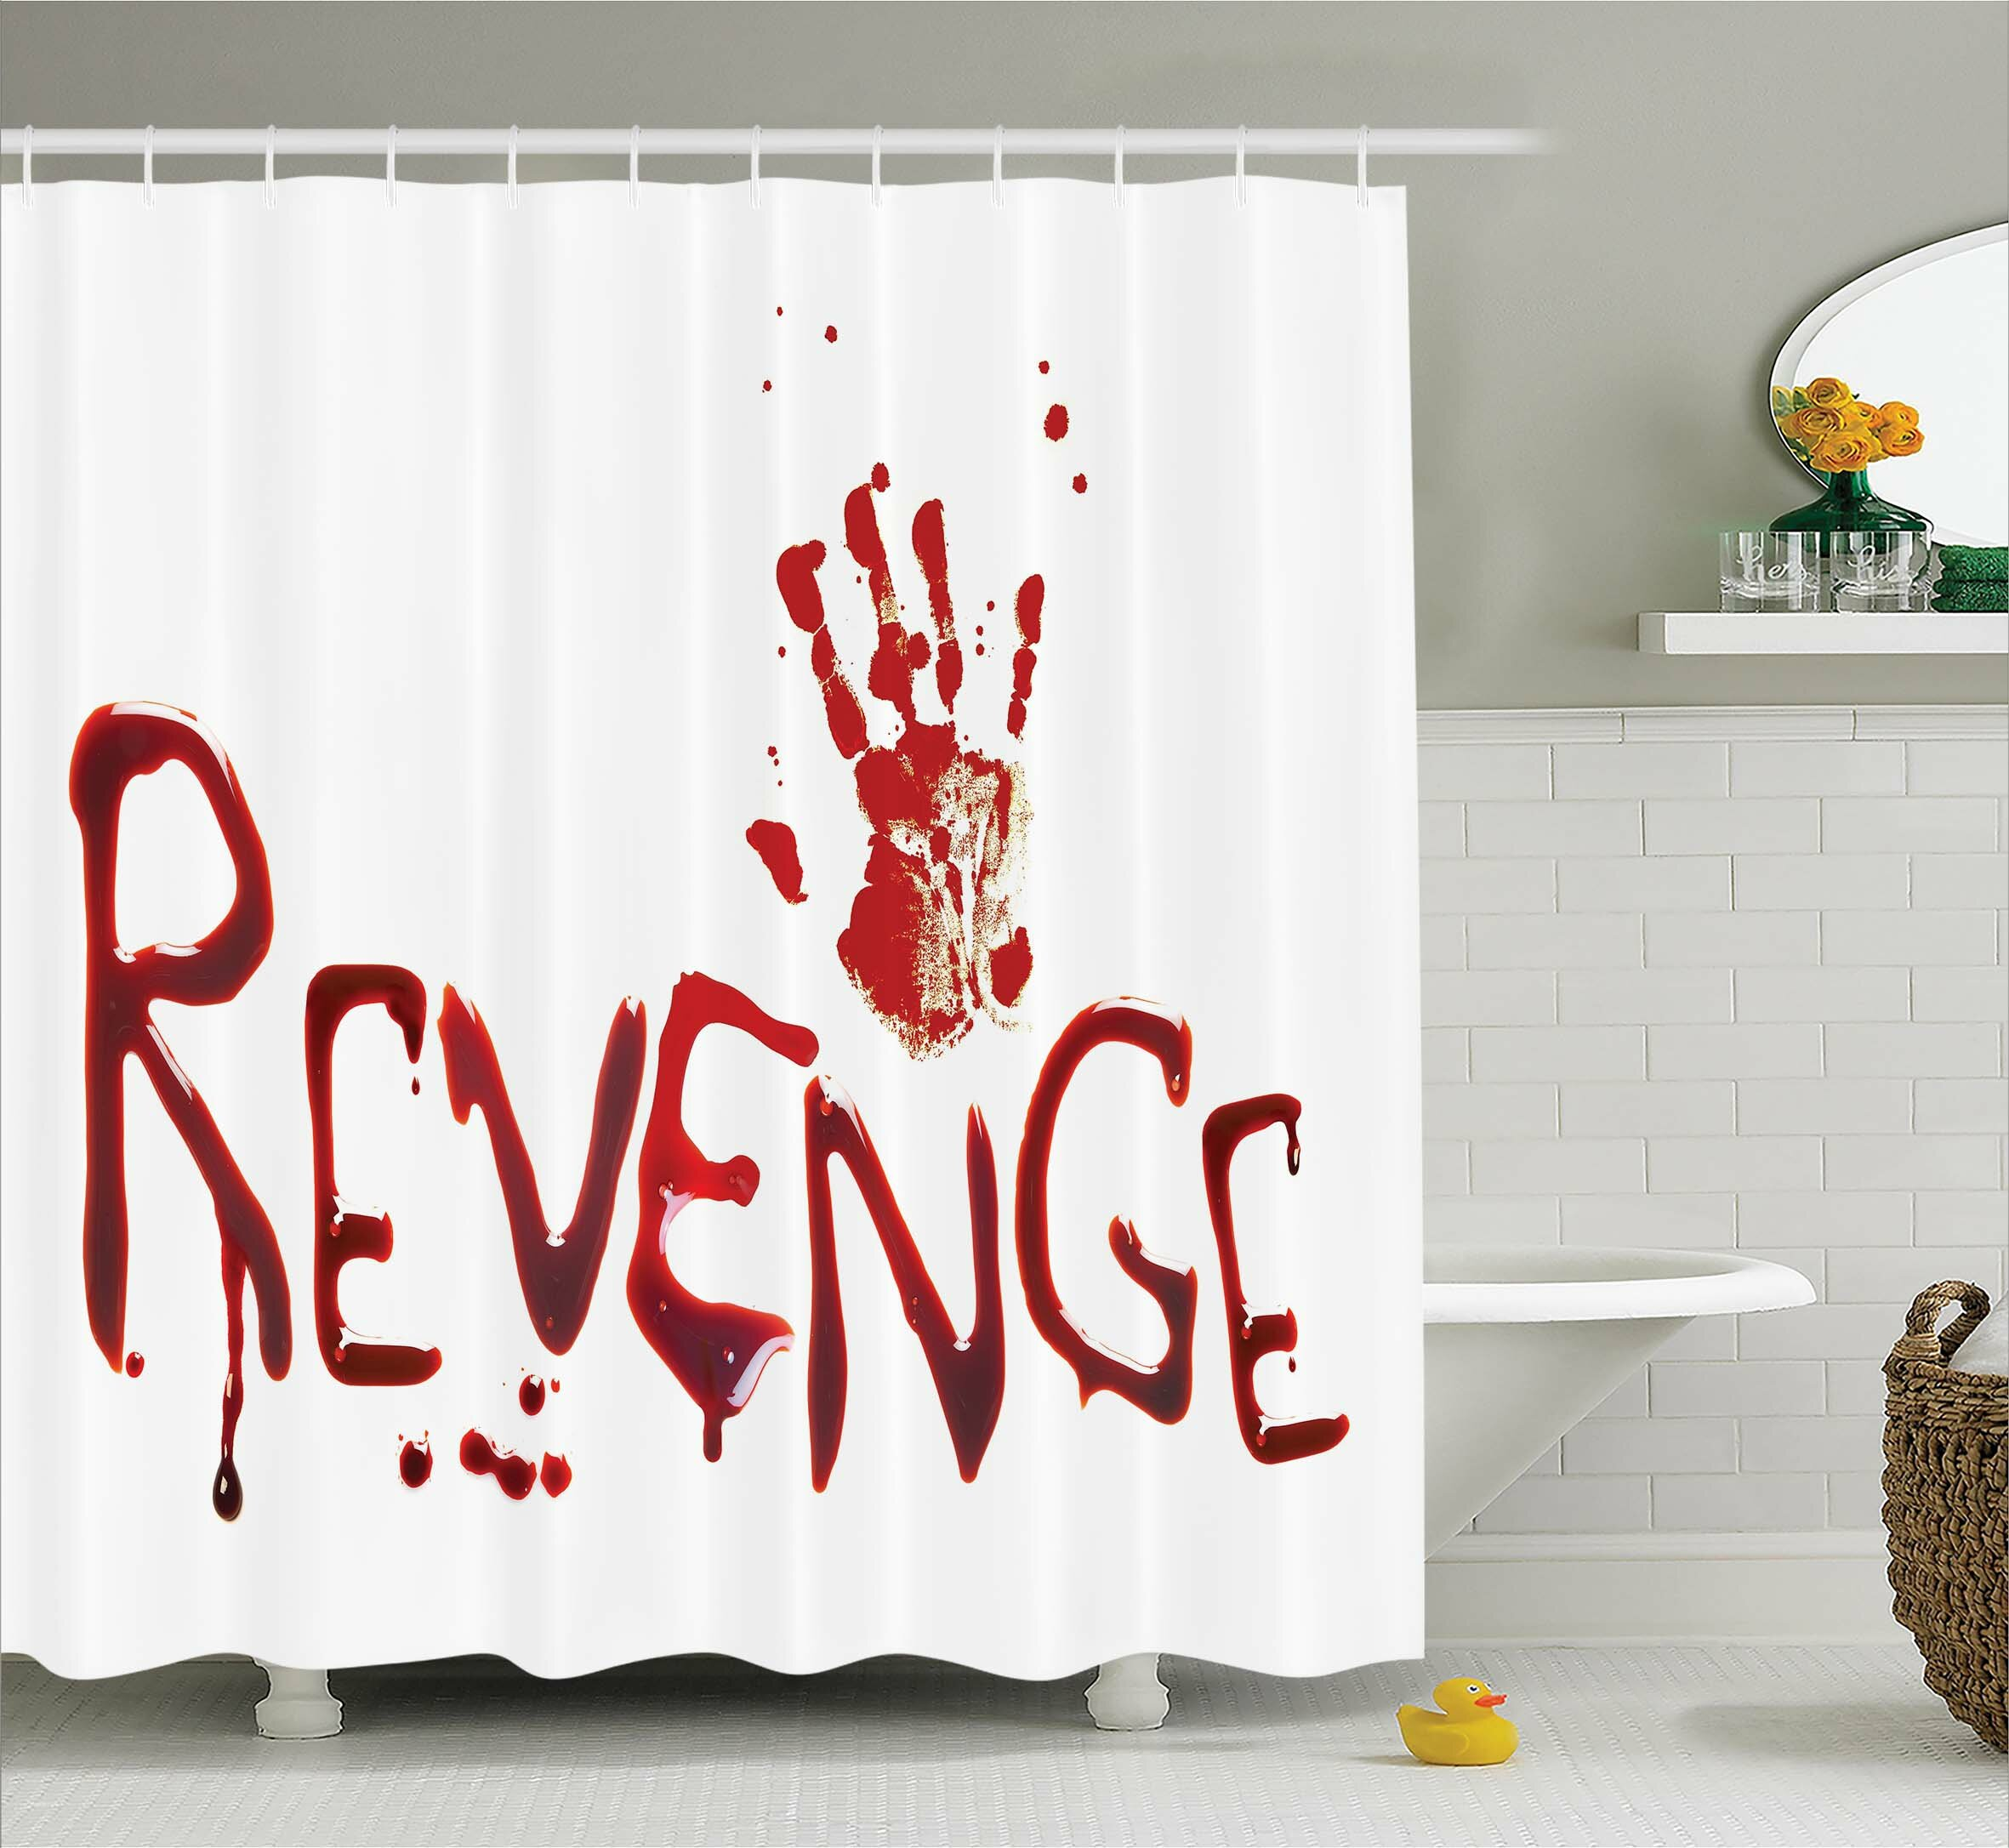 Ambesonne Bloody Handprint With Blood Shower Curtain